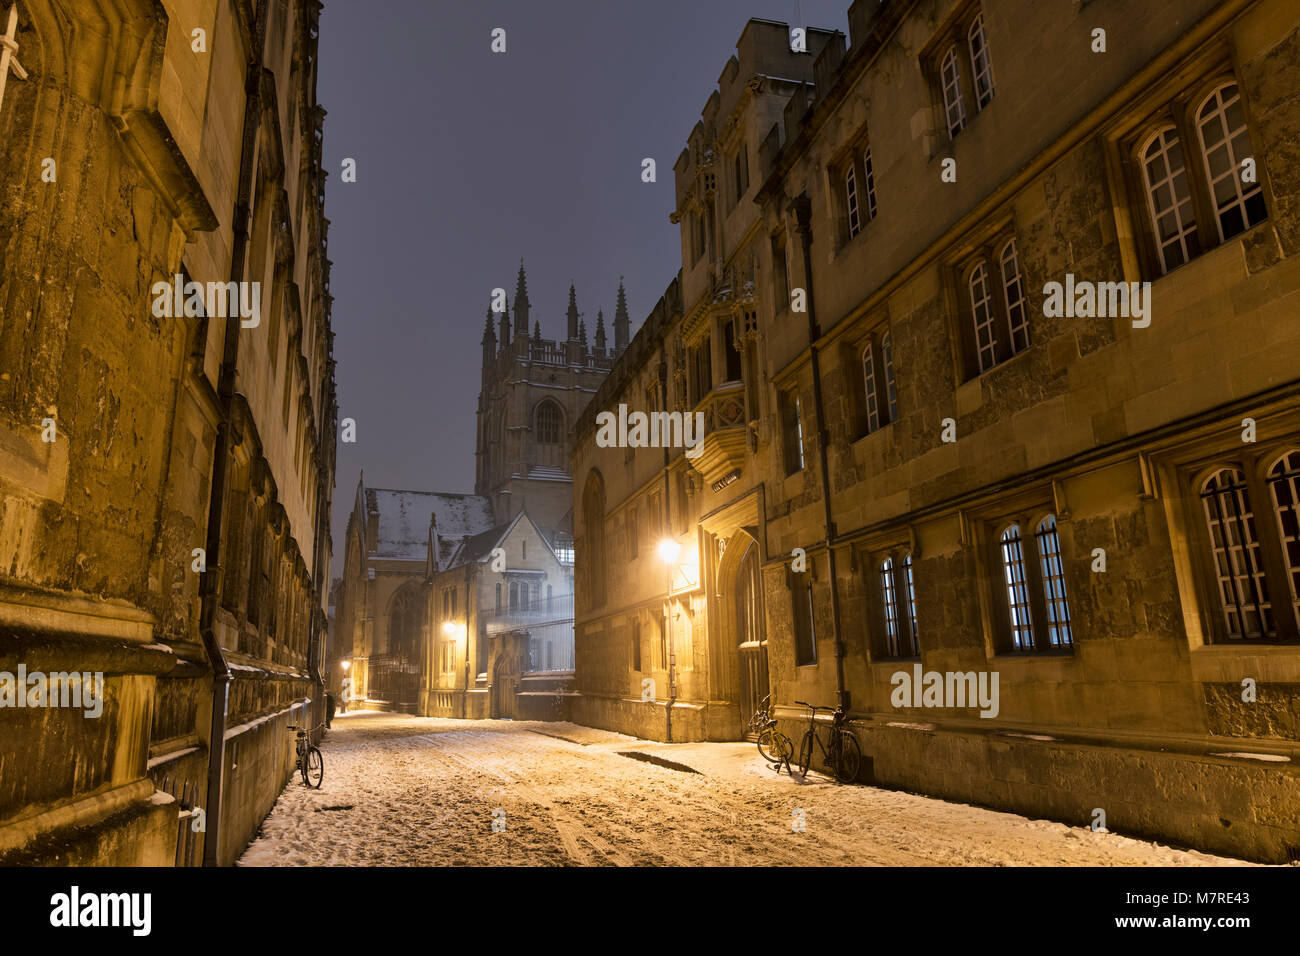 Corpus Christi college in Merton street in the snow early morning before dawn. Oxford, Oxfordshire, England - Stock Image